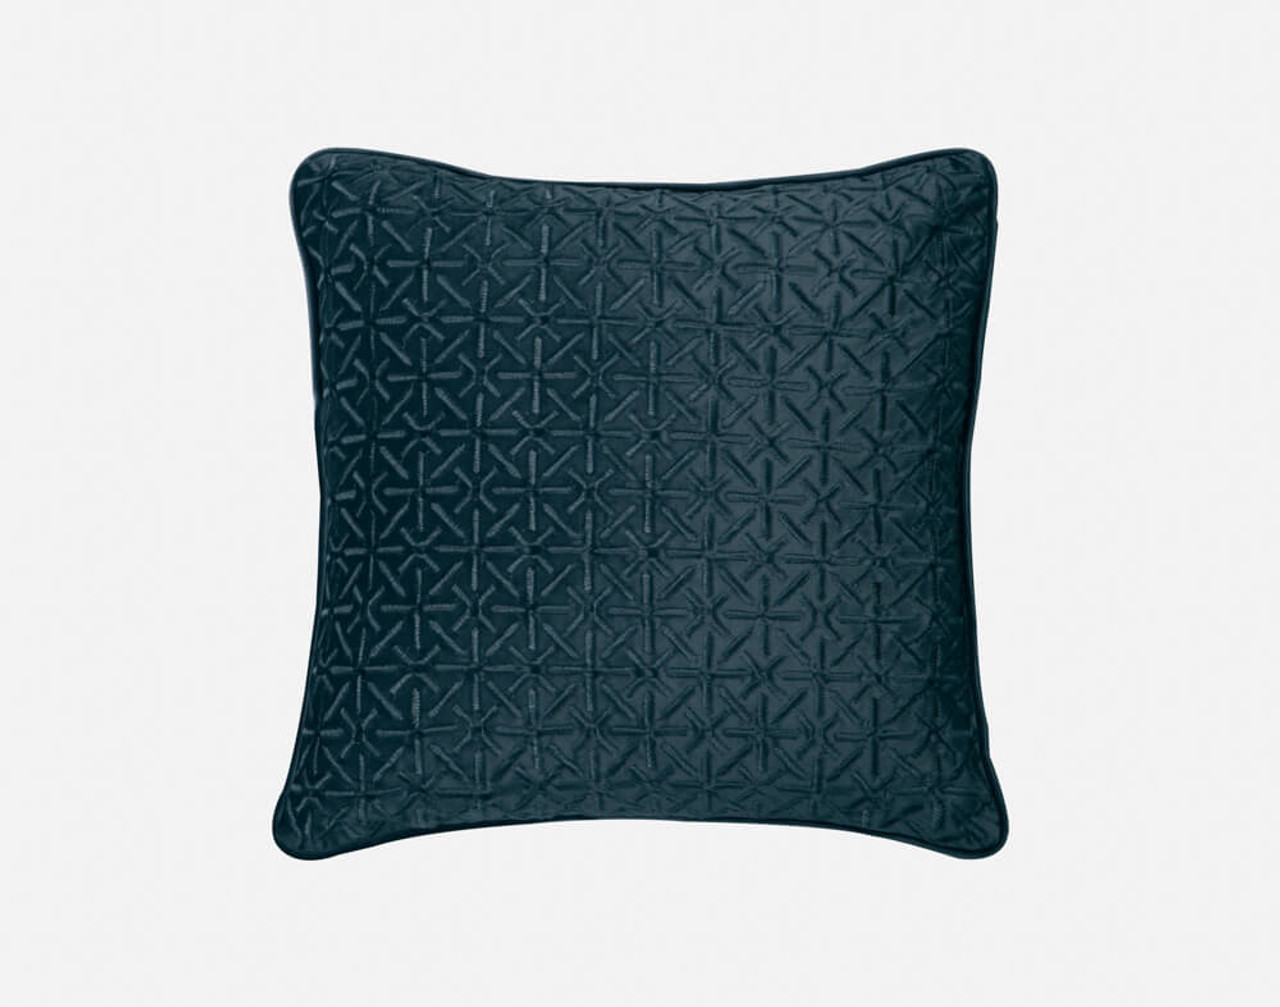 Front view of our Trellis Velvet Square Cushion Cover in Teal.